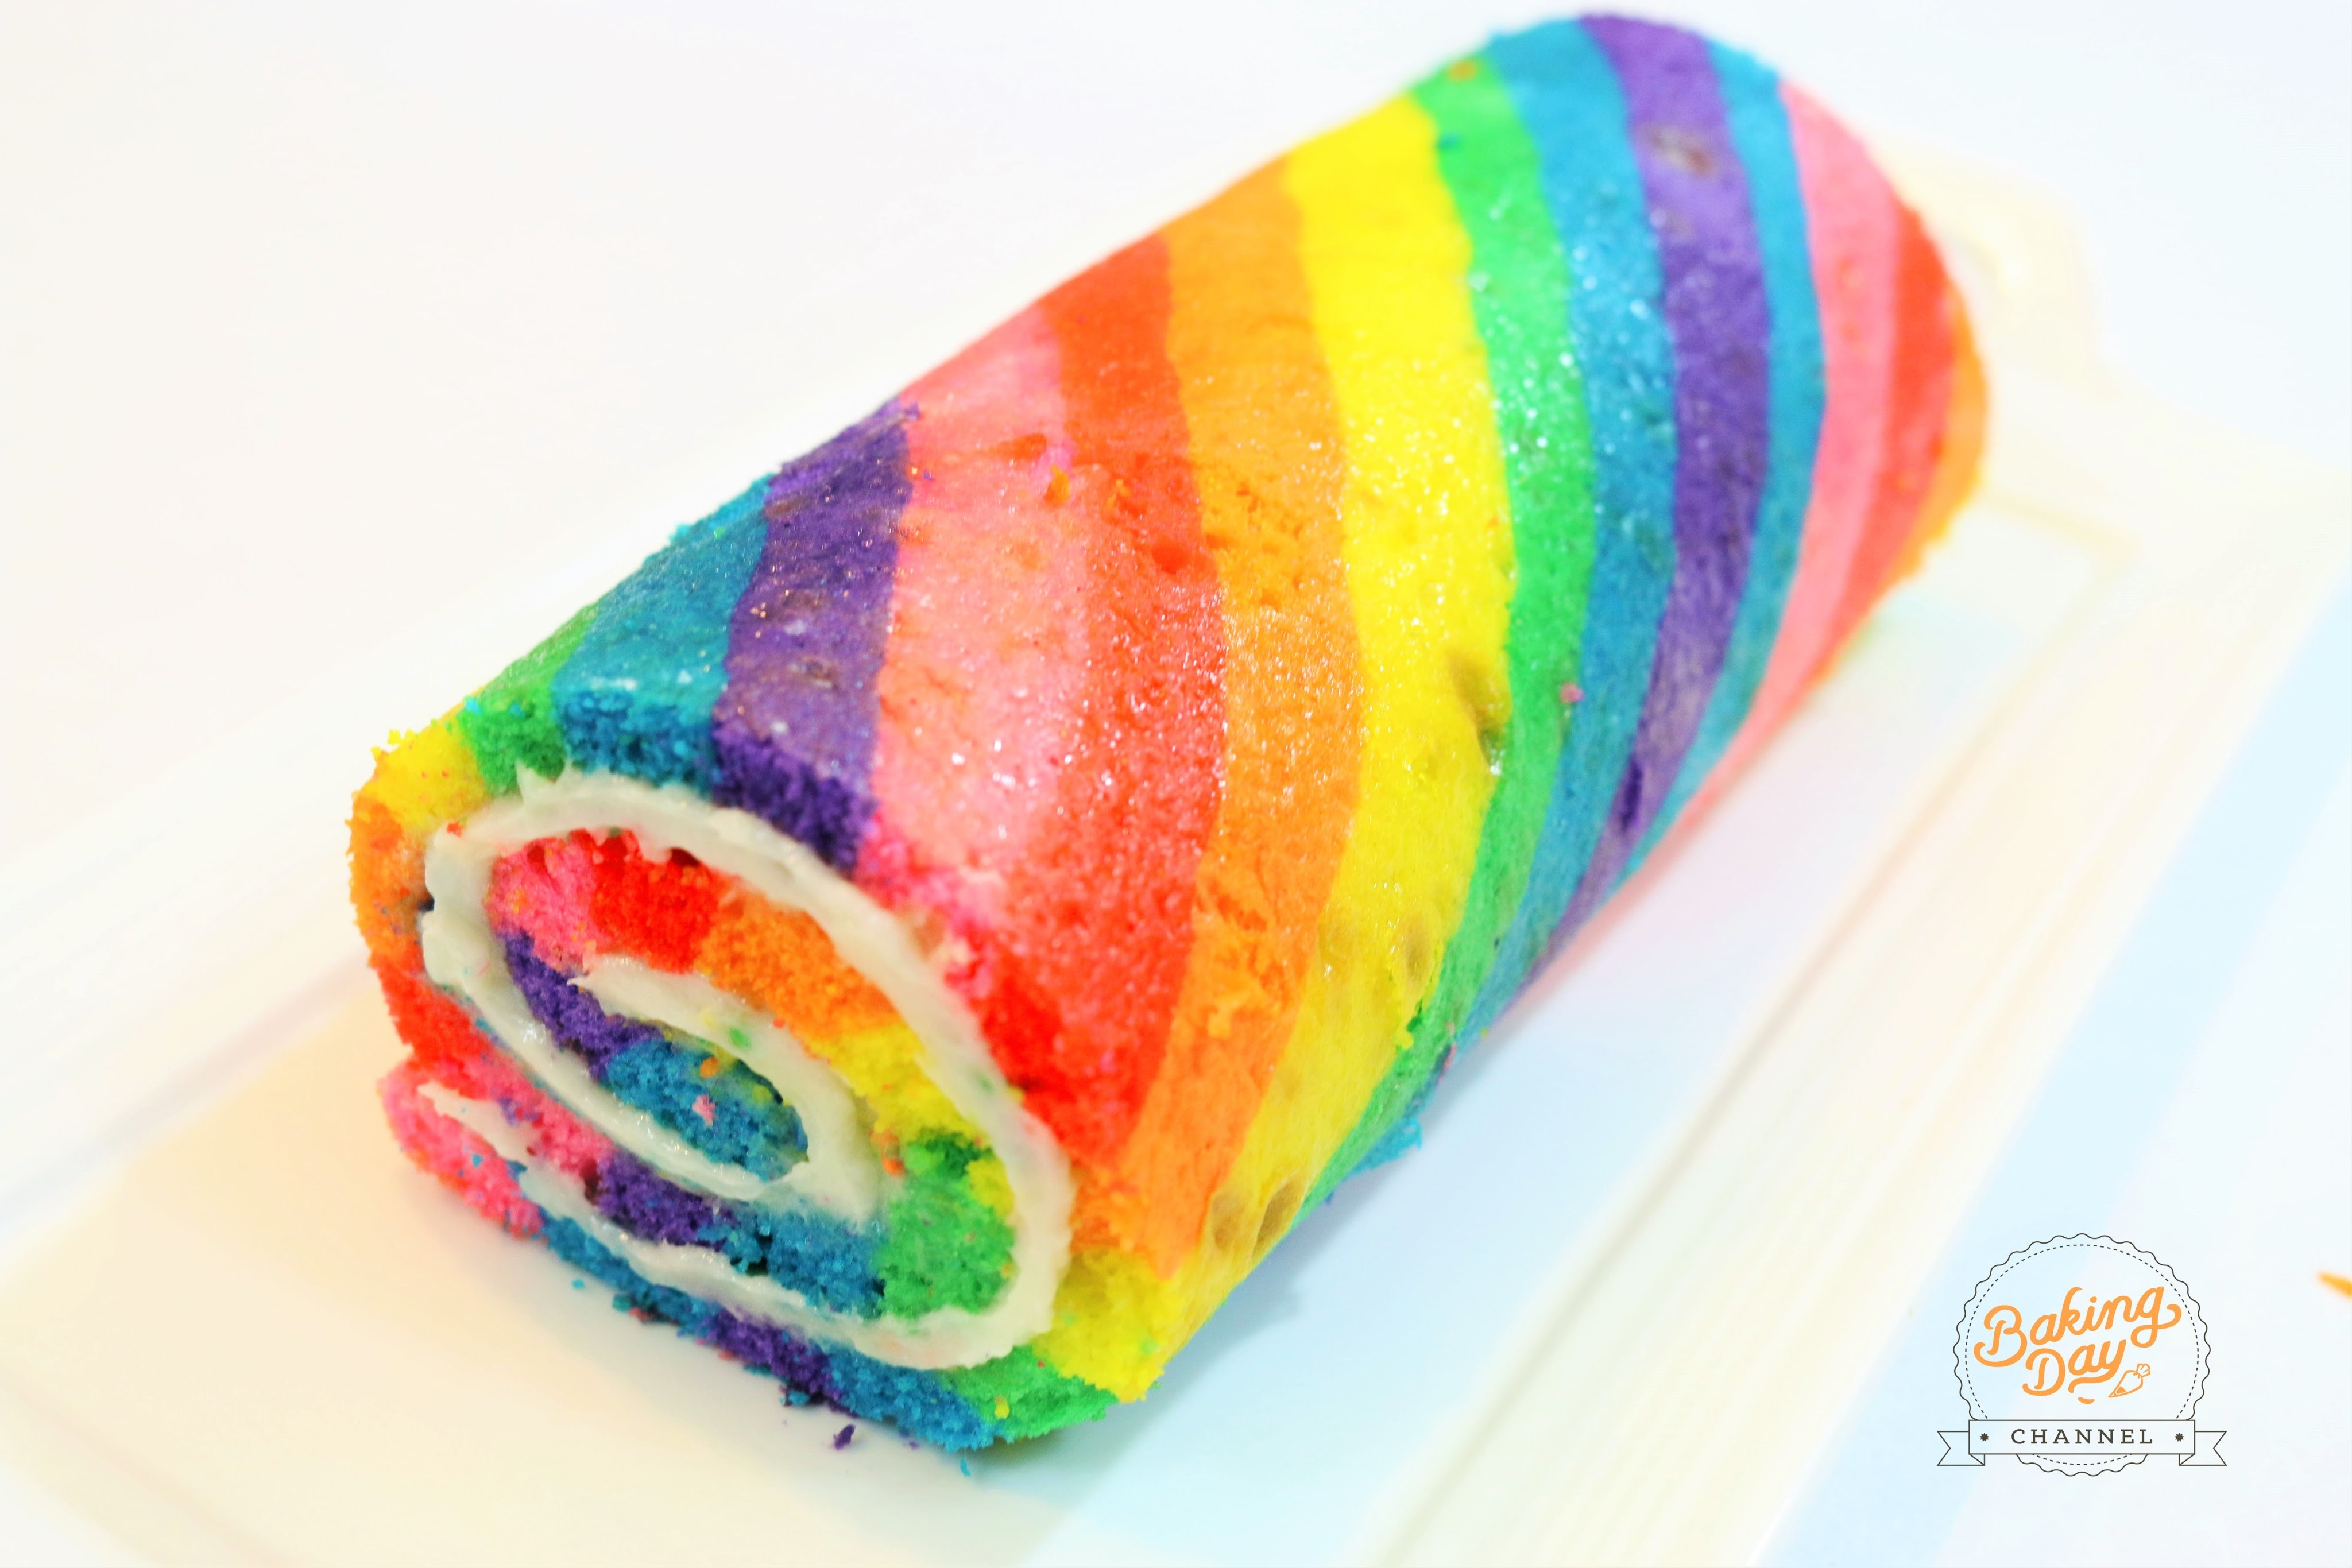 RAINBOW CAKE ROLL - BAKING DAY